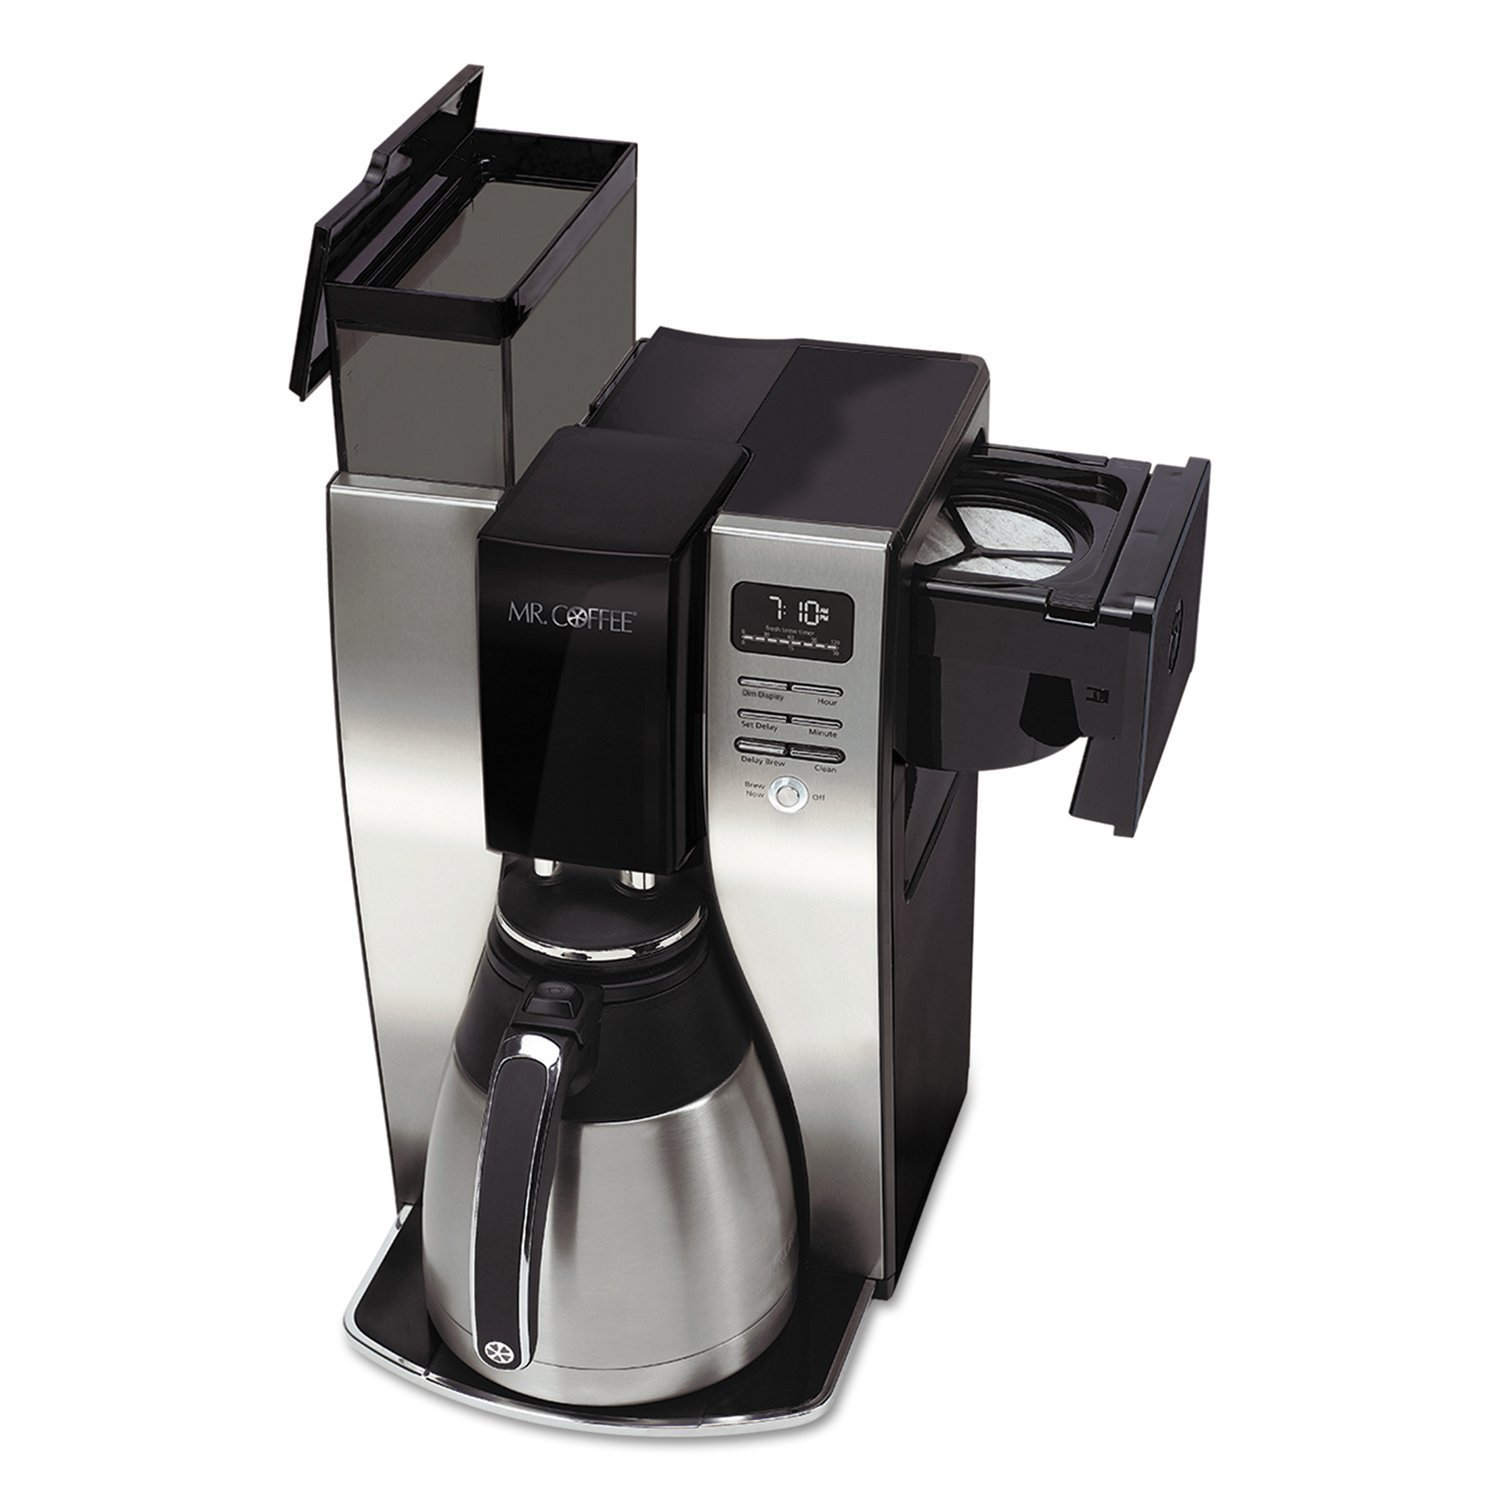 Mr. Coffee Coffee Maker, Programmable, 10-Cup, Silver